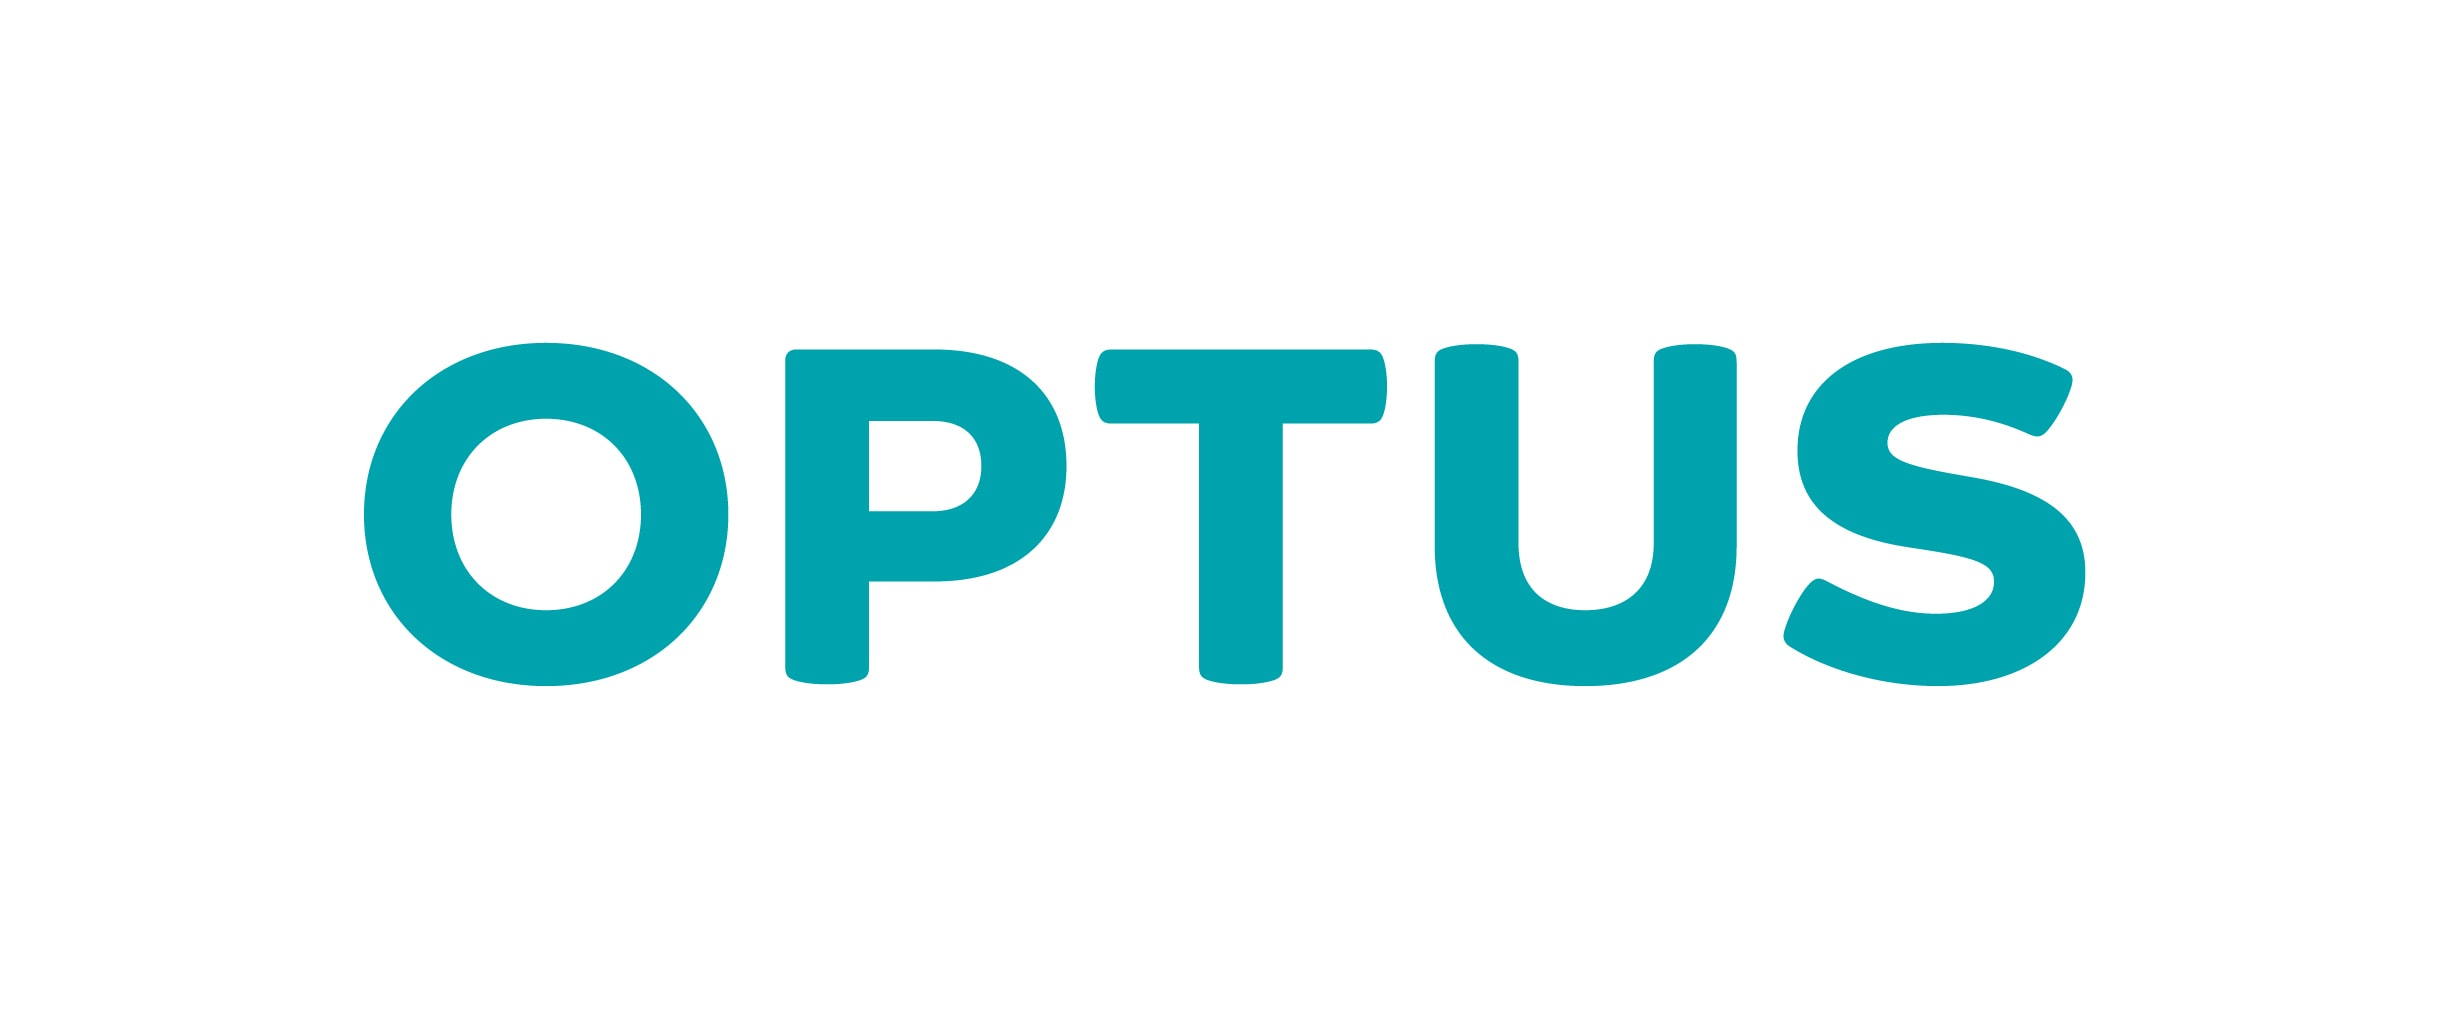 Optus teal srgb release 03 310316